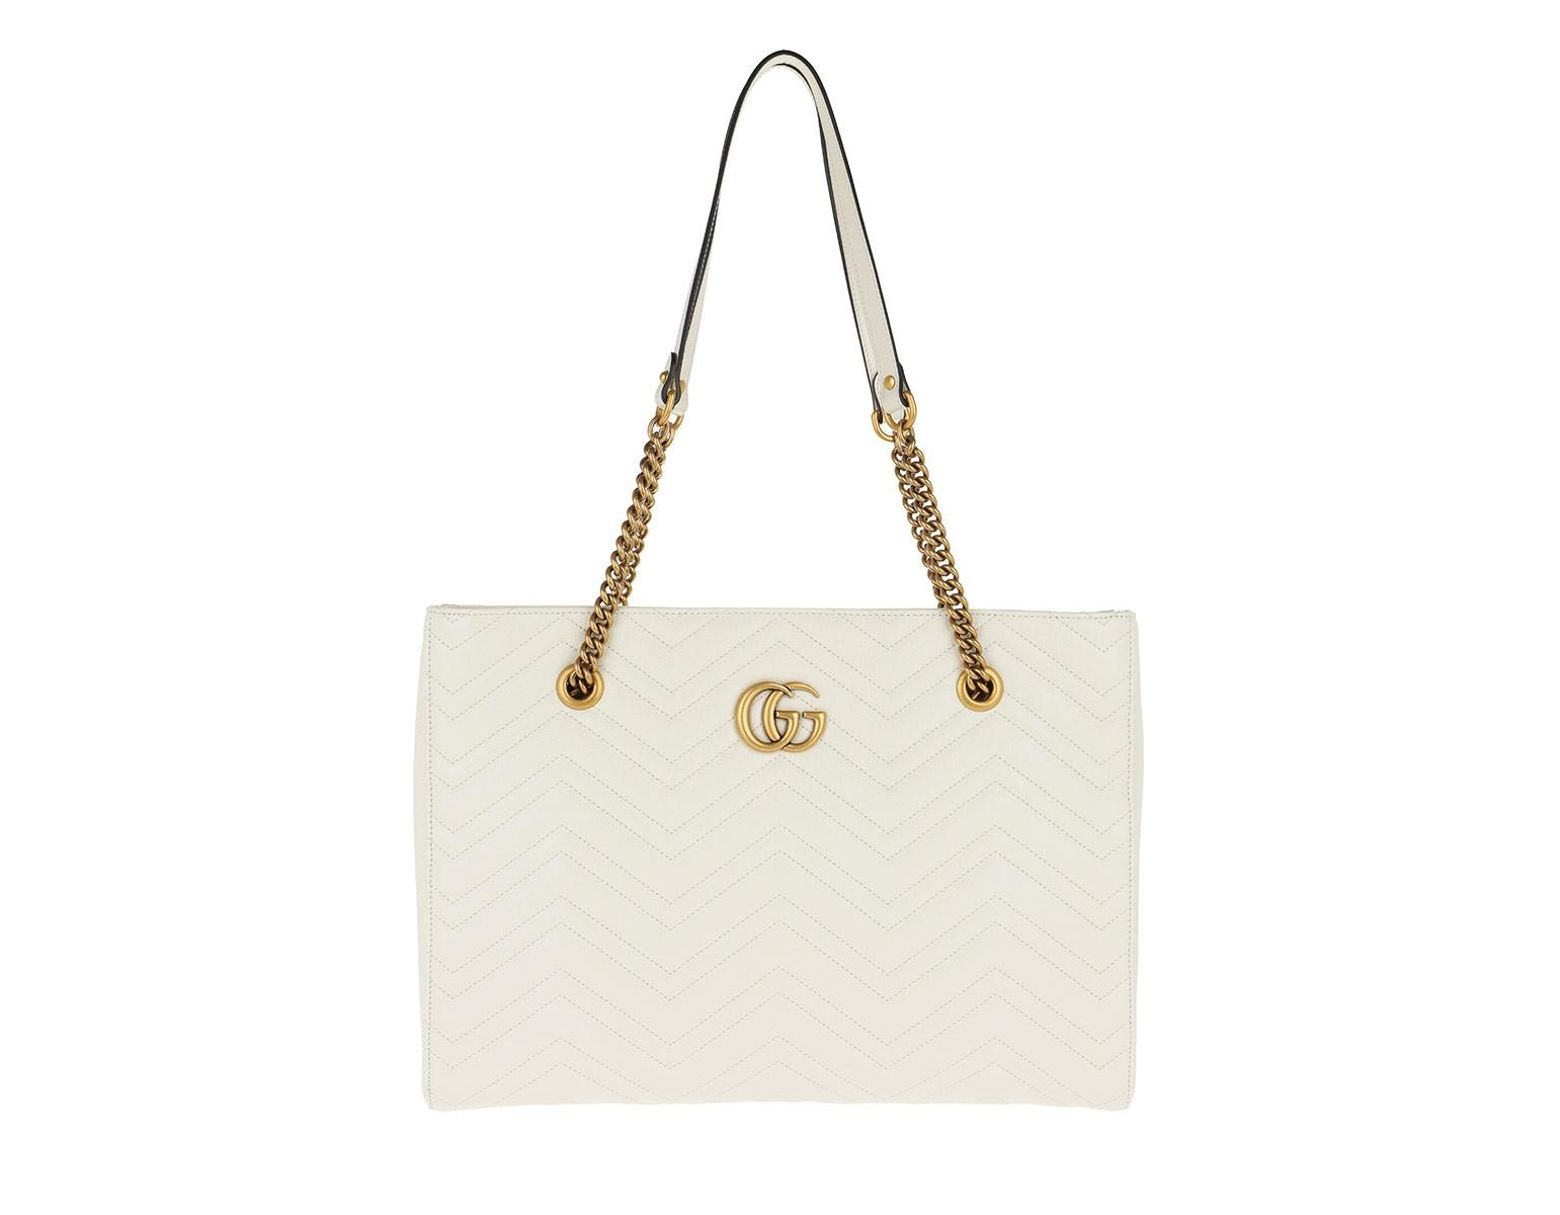 72d4ccd05f20 Gucci GG Marmont Matelassé Medium Tote Leather White in White - Lyst